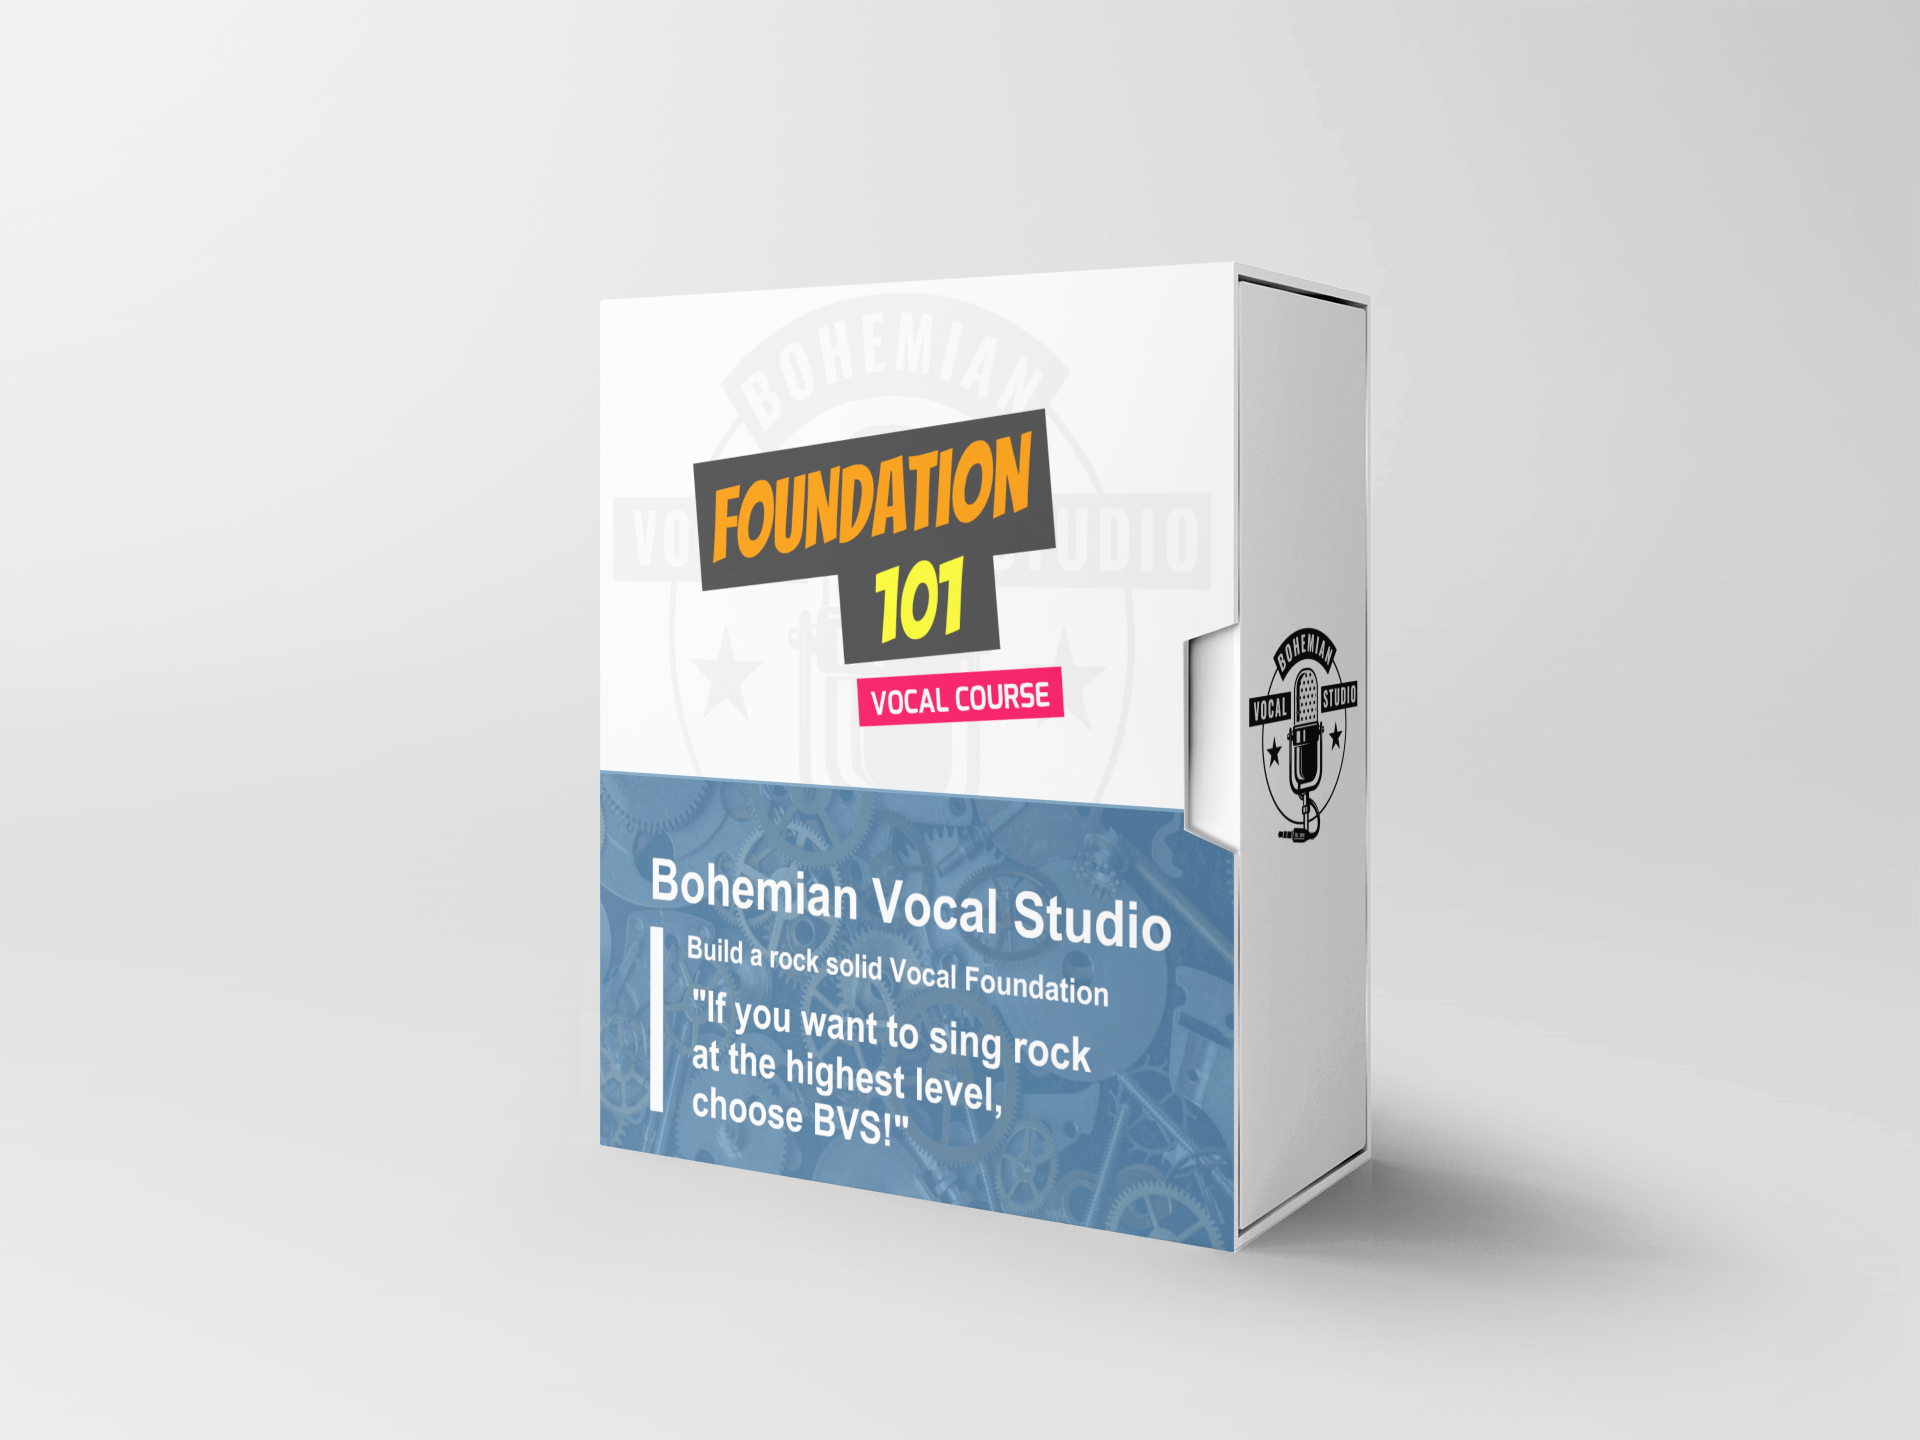 The Foundation 101 Singing Course